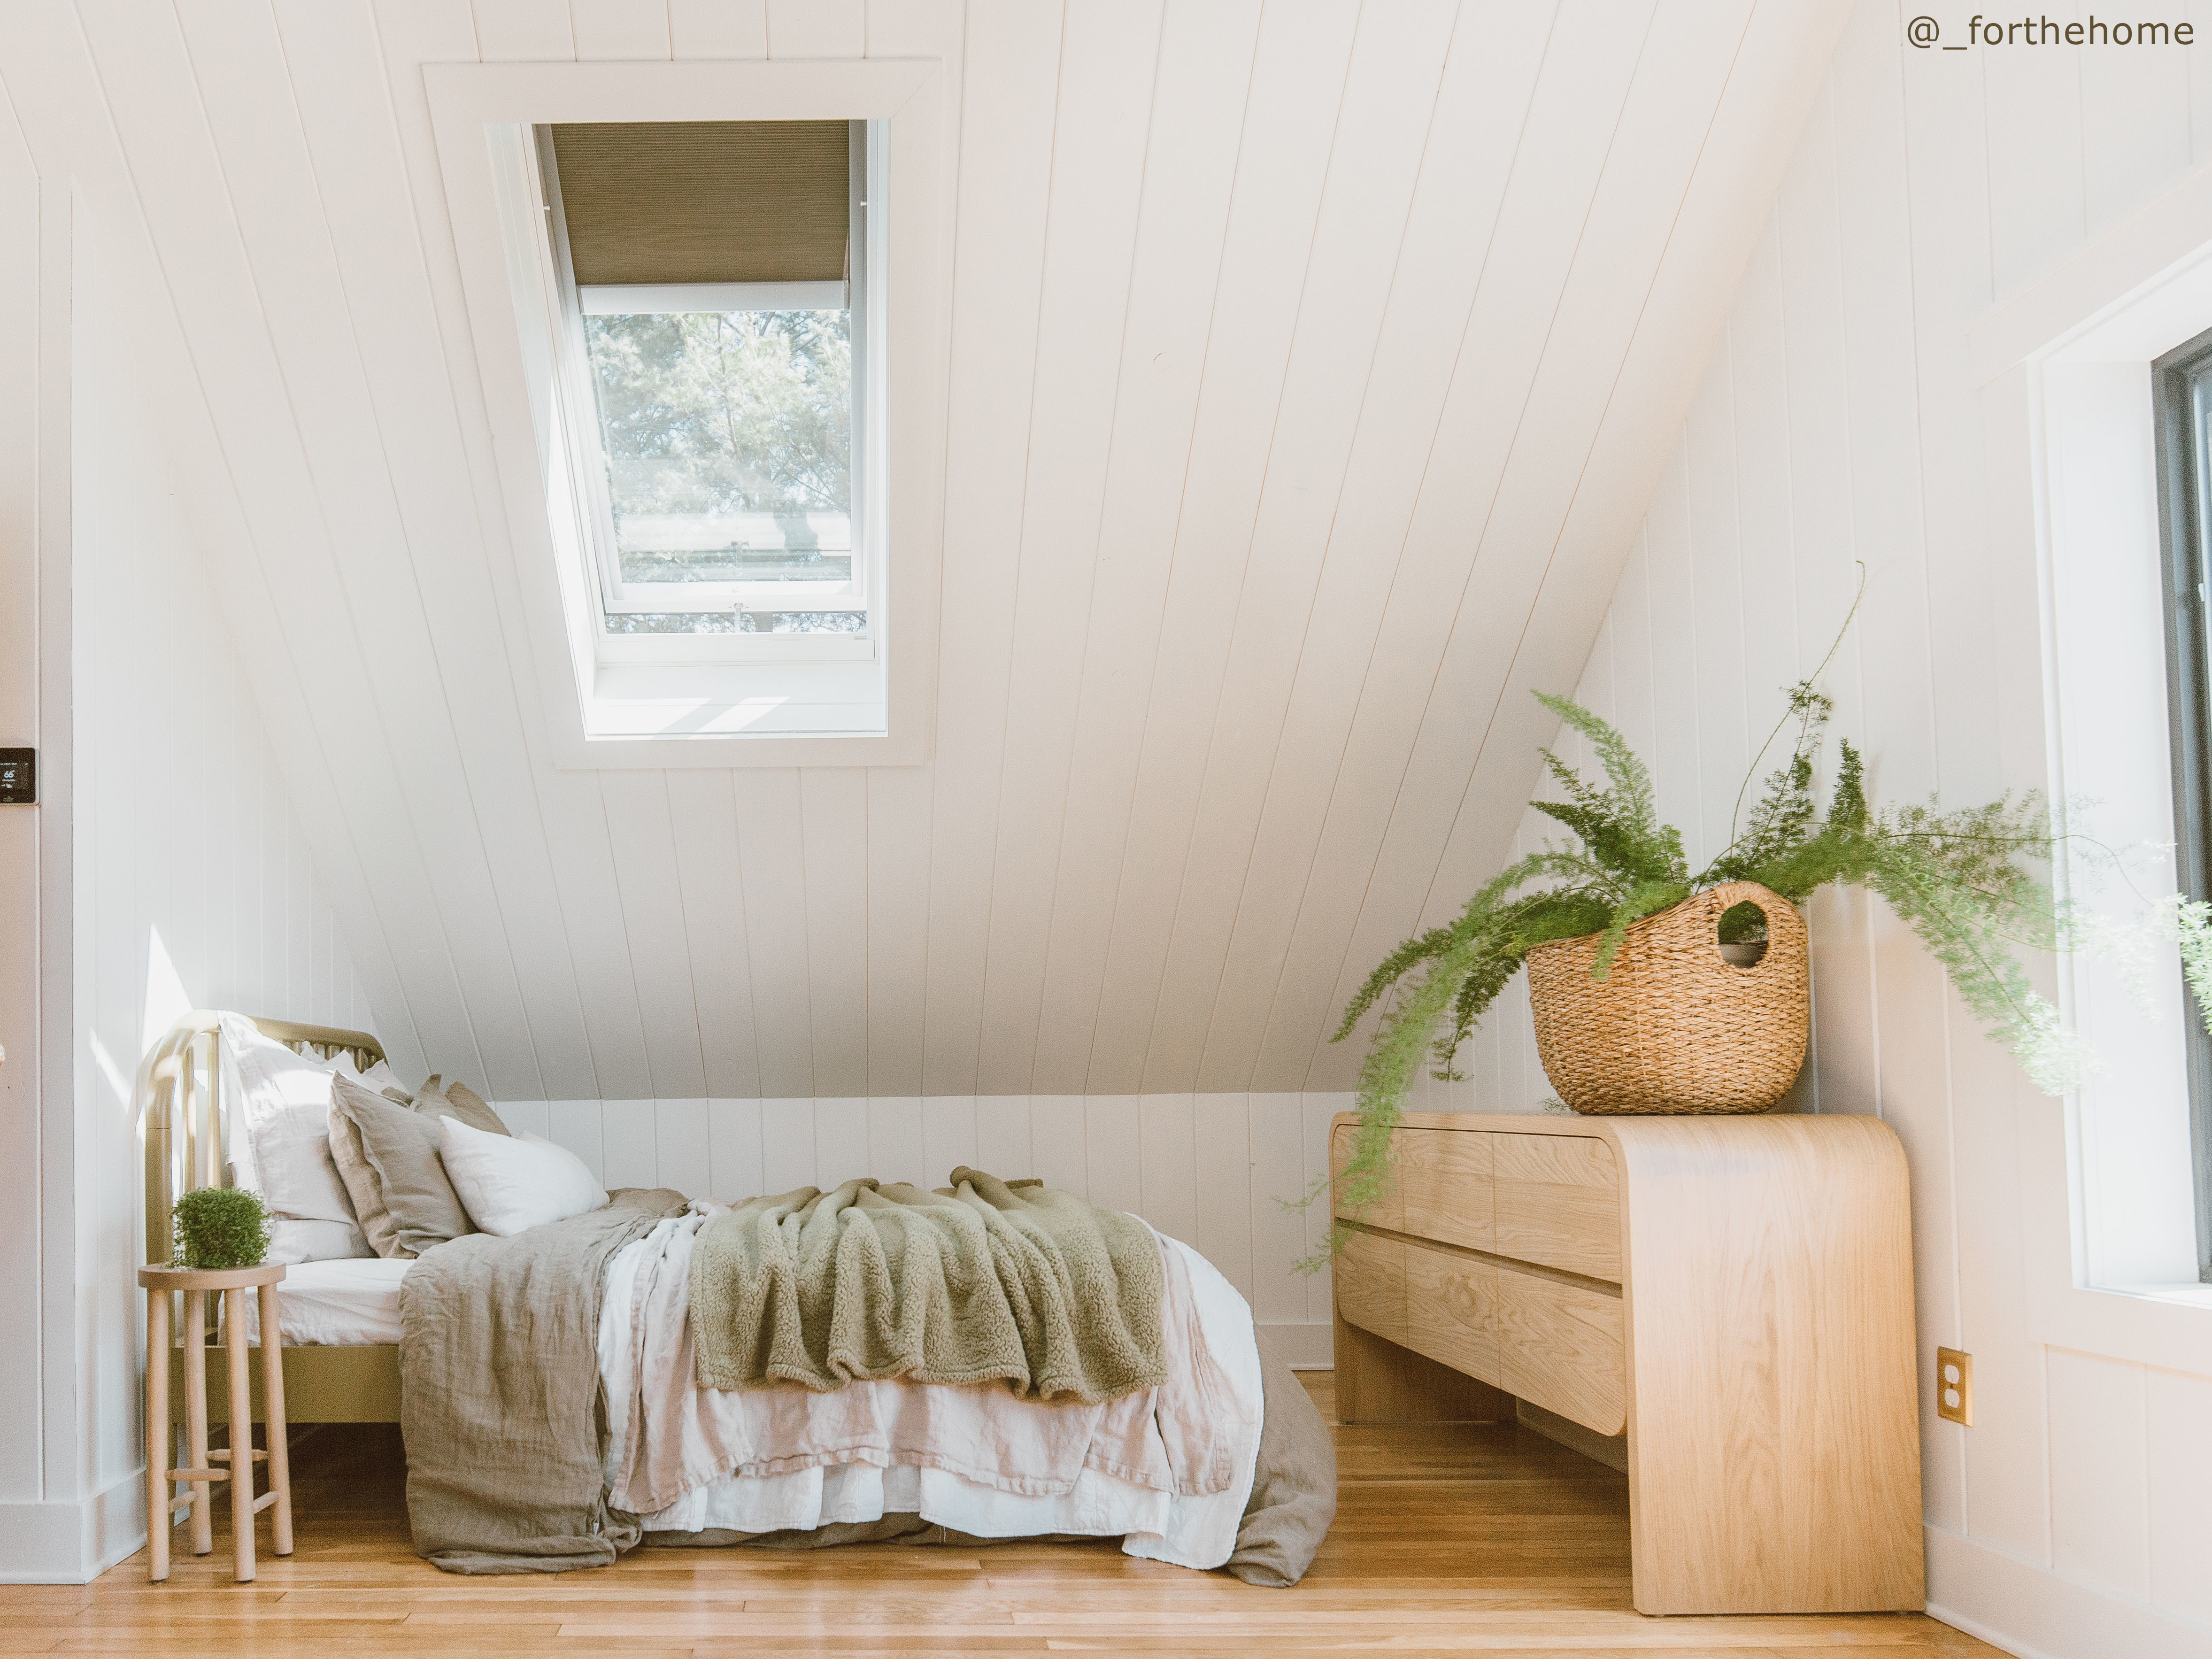 bedroom-with-natural-wood-floors-white-shiplap-and-skylight